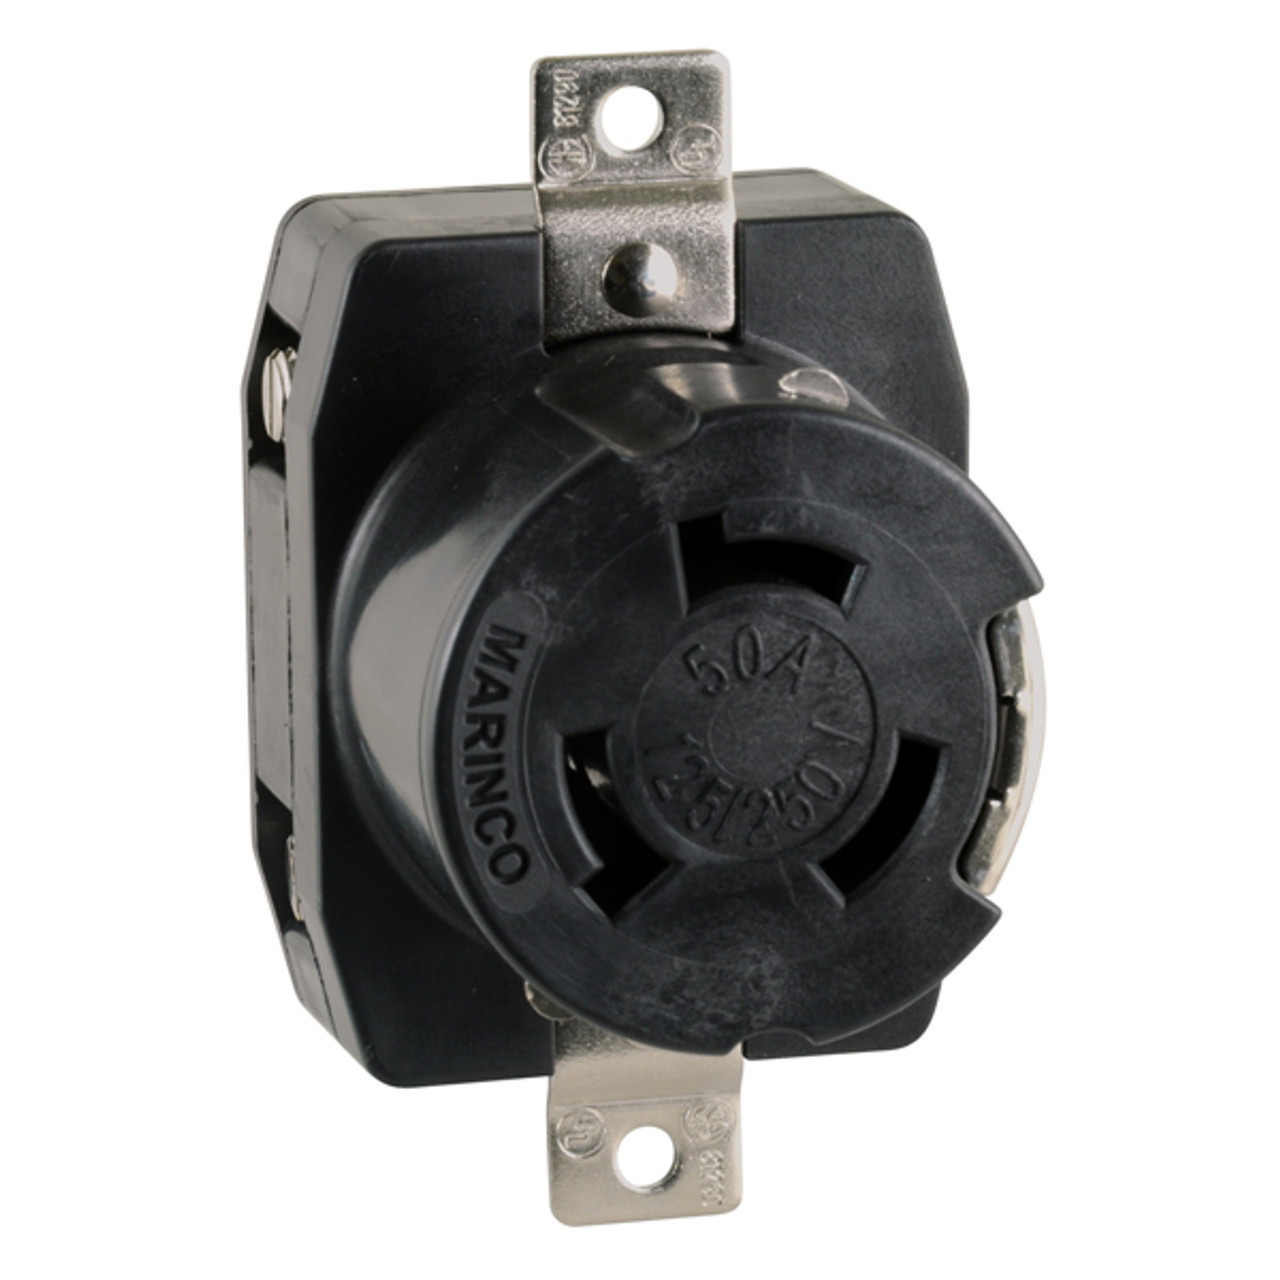 Marinco 50 Amp S Power Receptacle on